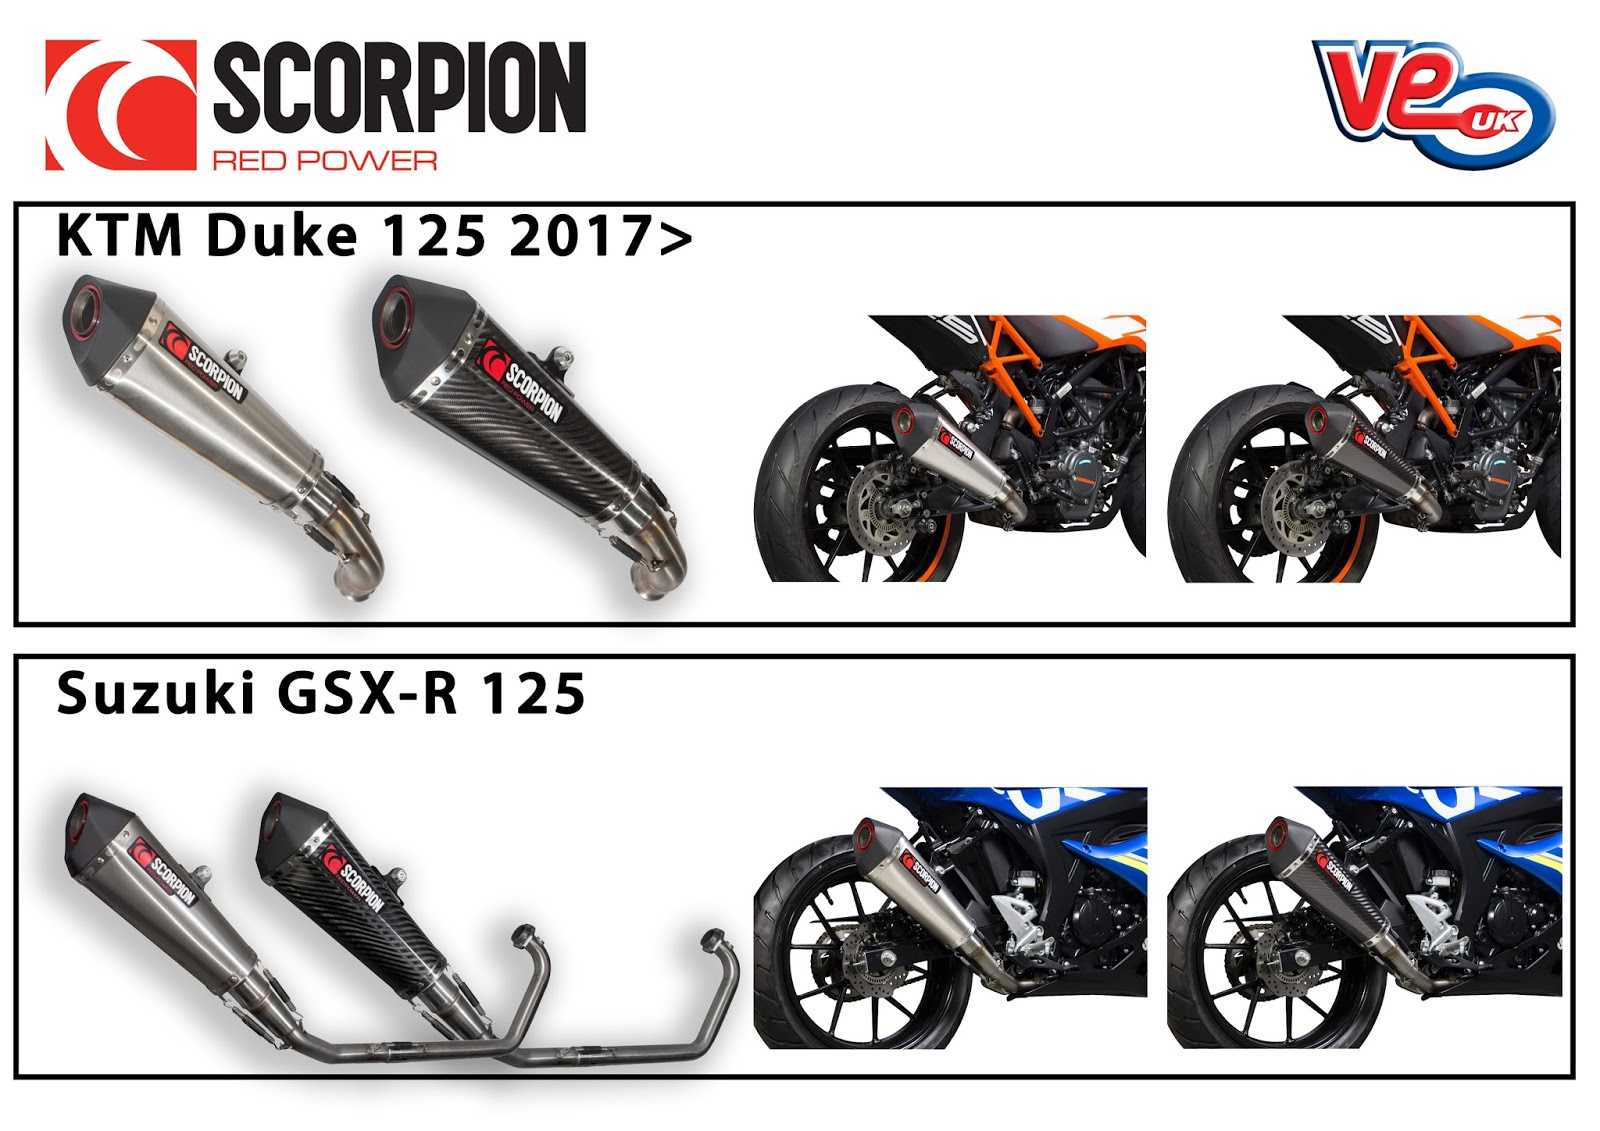 KTM Duke 125 & Suzuki GSX-R 125 Scorpion Exhausts